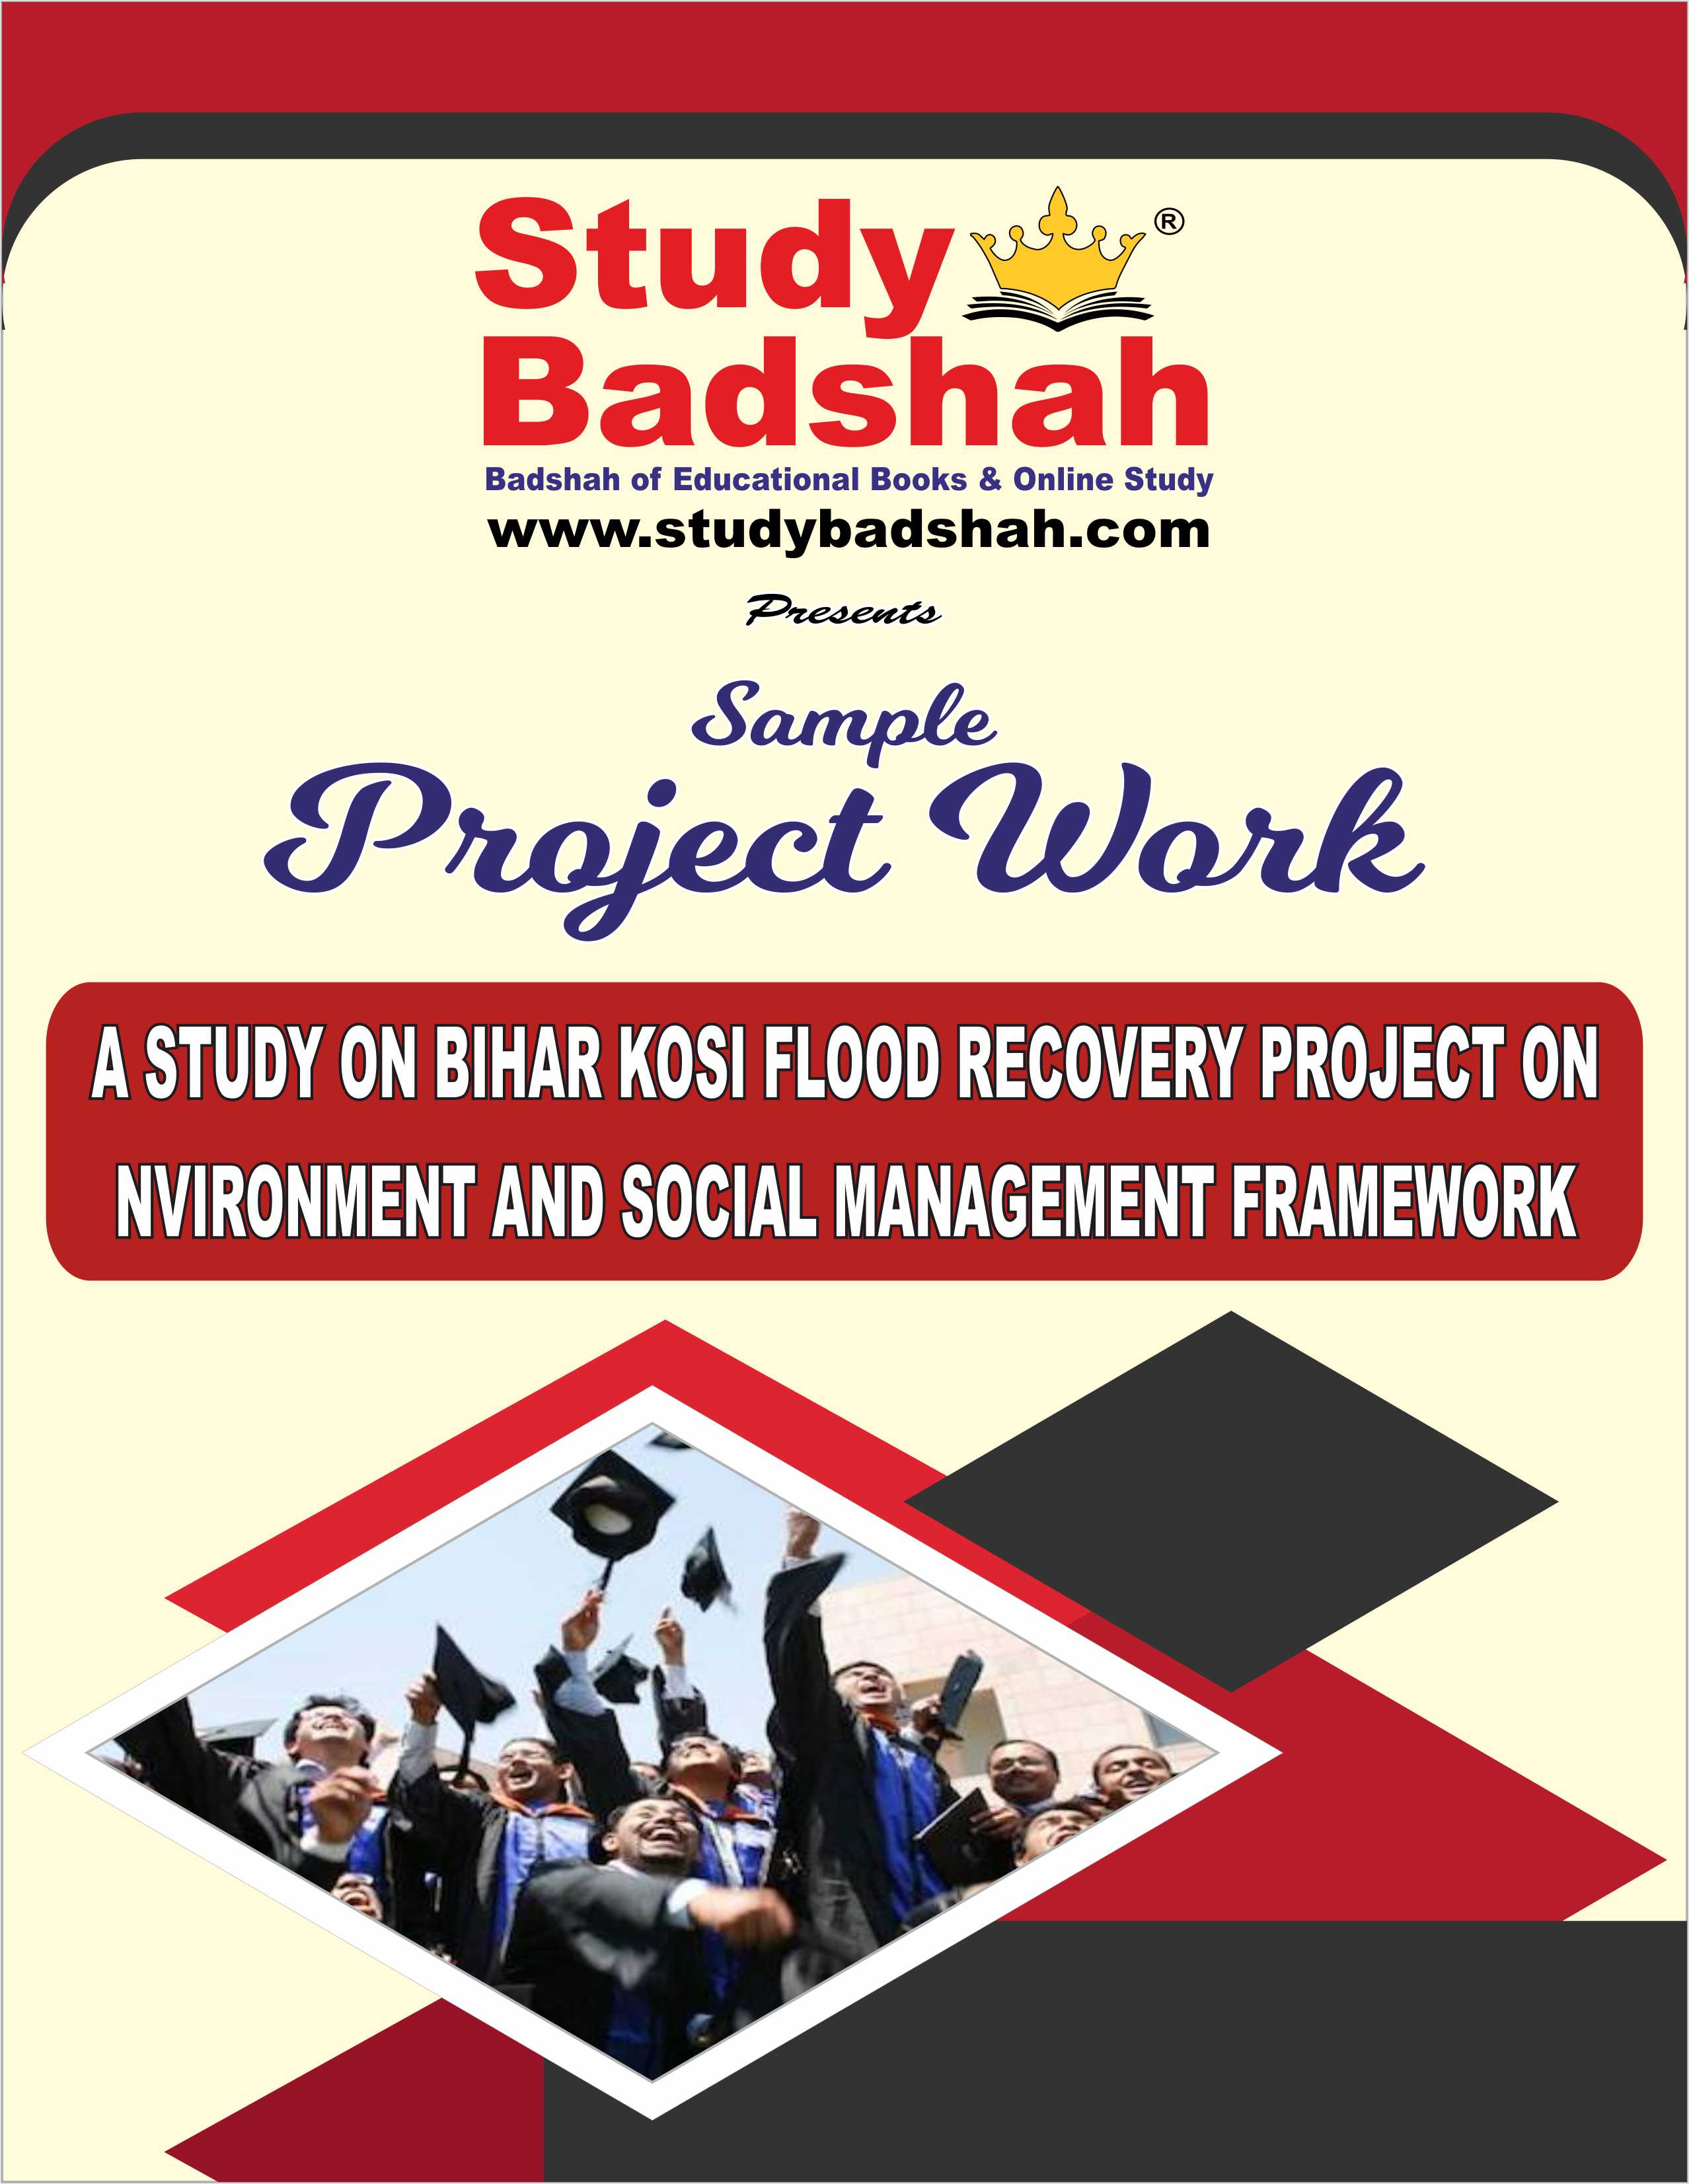 A STUDY ON BIHAR KOSI FLOOD RECOVERY PROJECT ON ENVIRONMENT AND SOCIAL MANAGEMENT FRAMEWORK